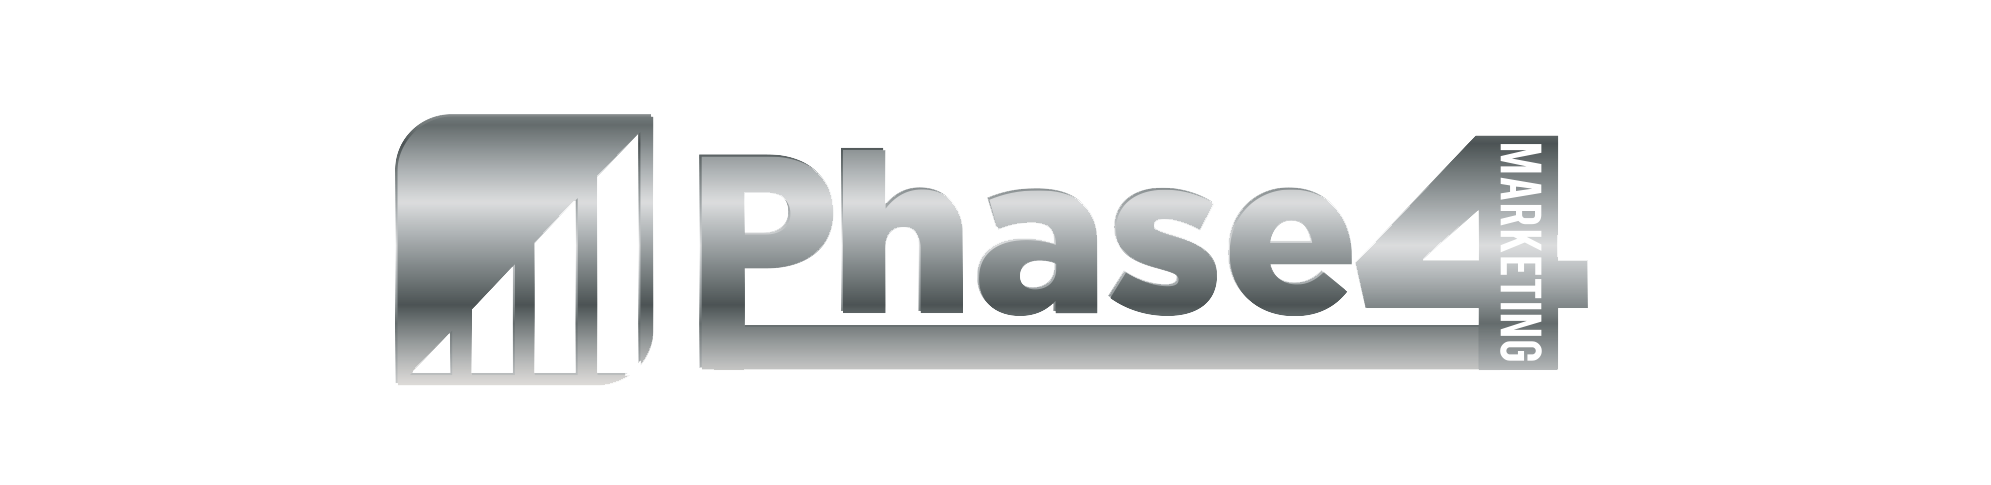 Phase 4 Marketing - Digital Marketing Agency